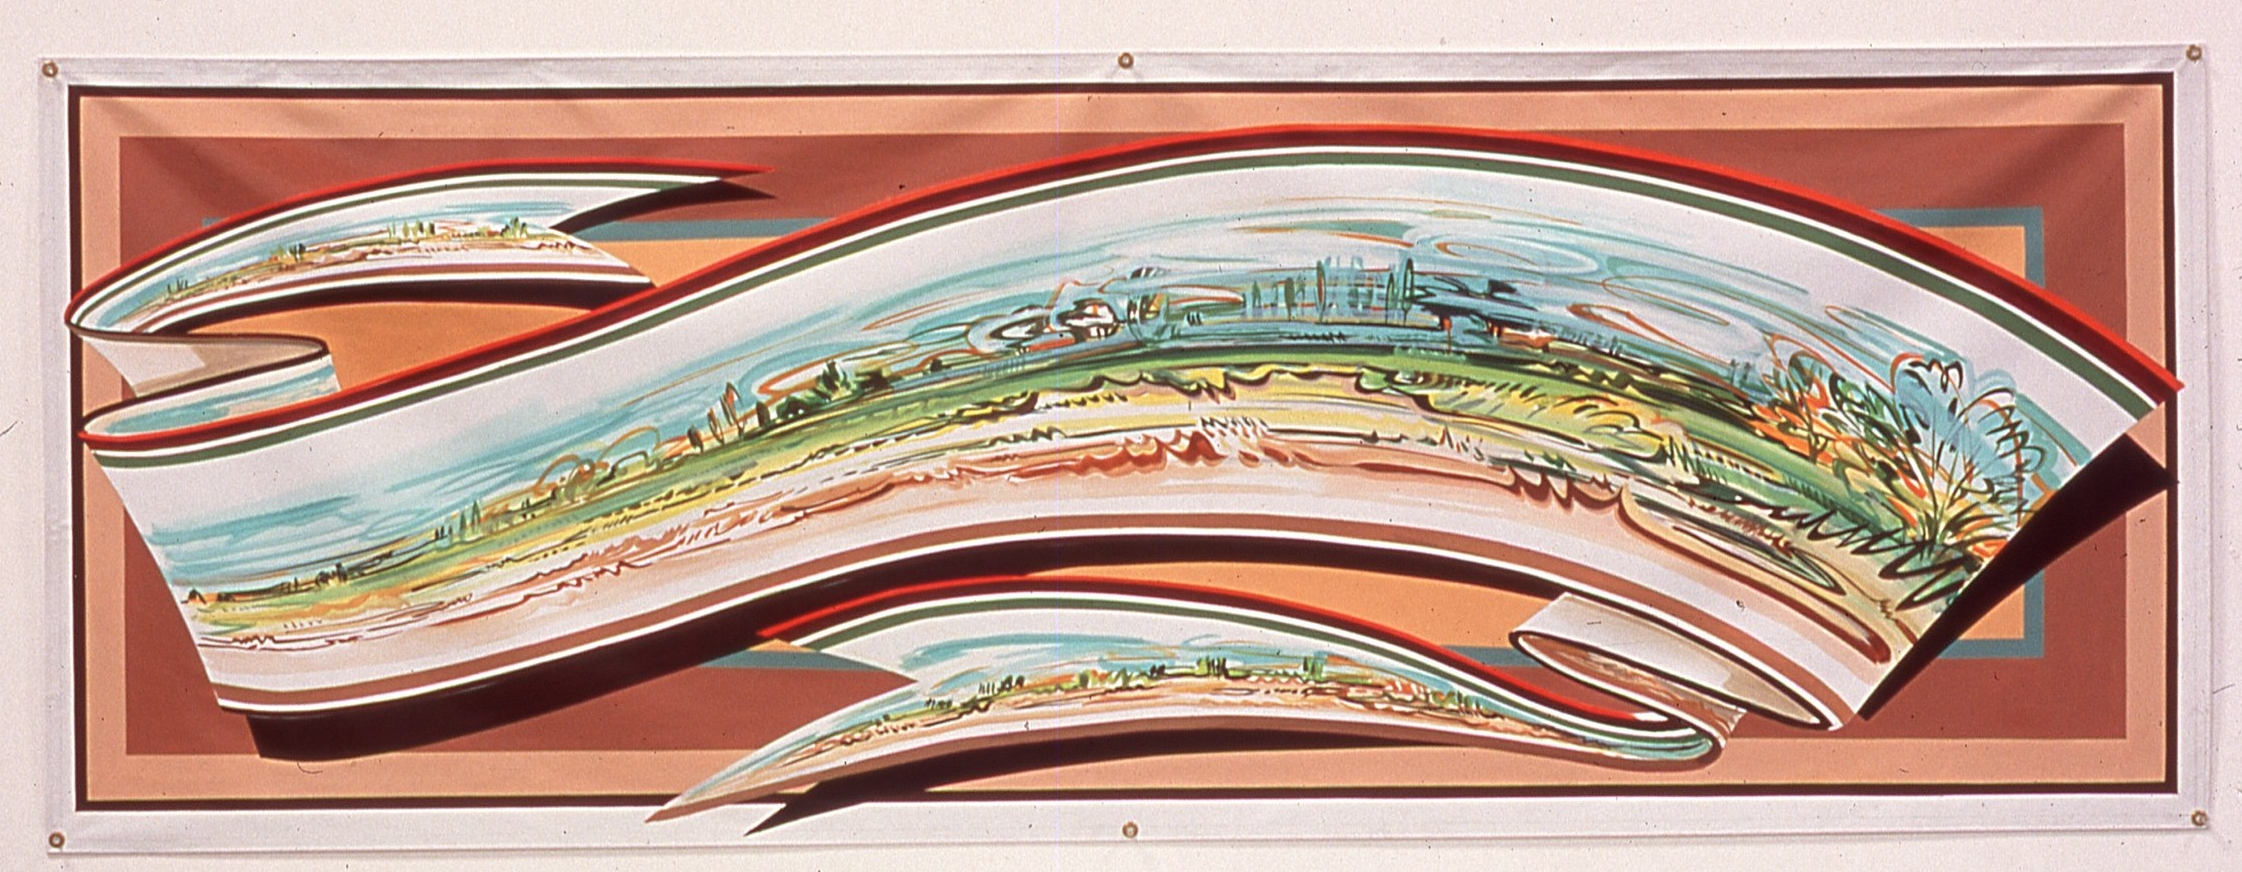 "Open Fields,   2001     Enamel on vinyl commercial banner   40"" x 110 1/2"""